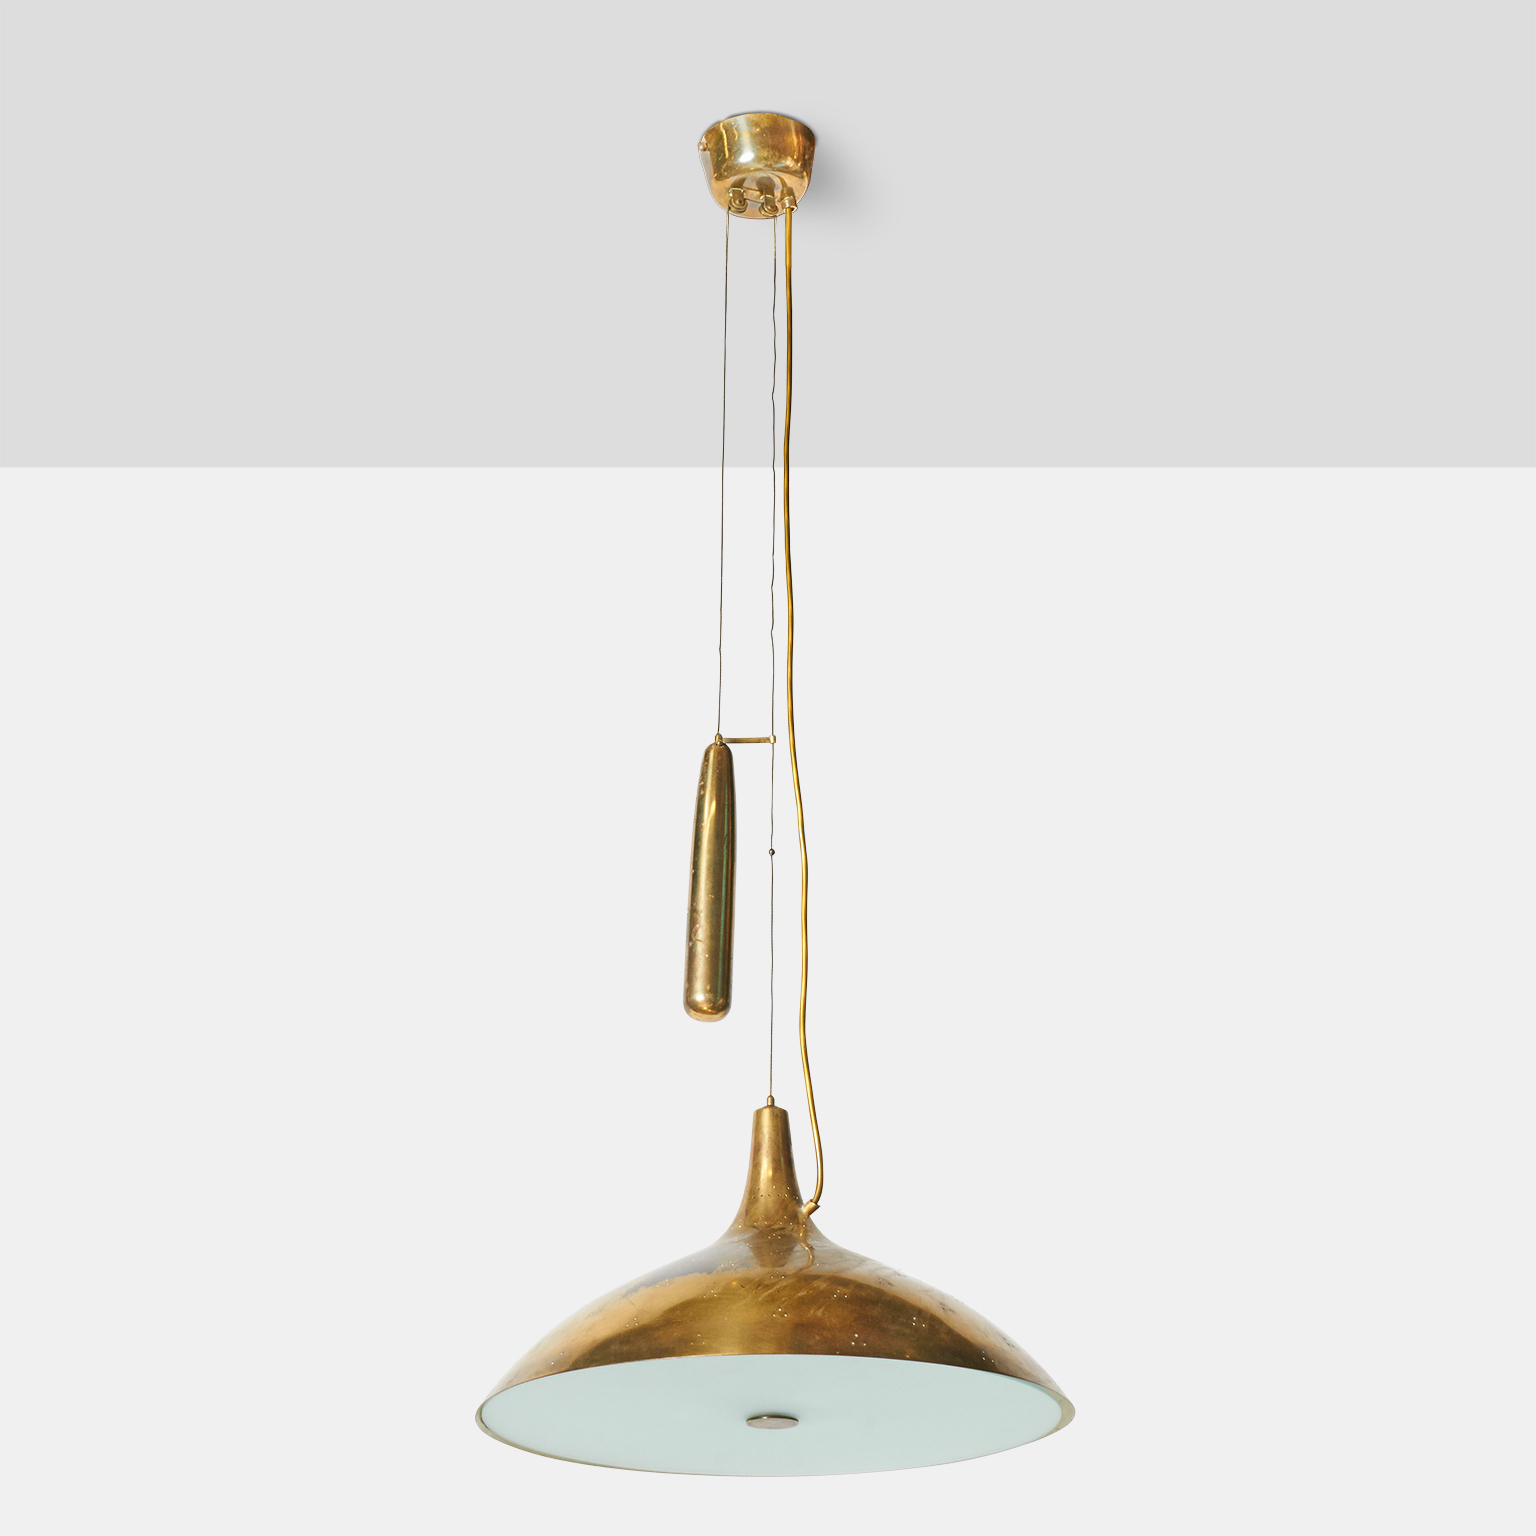 Paavo tynell pendant lamp for taito almond and company almond and company mozeypictures Image collections